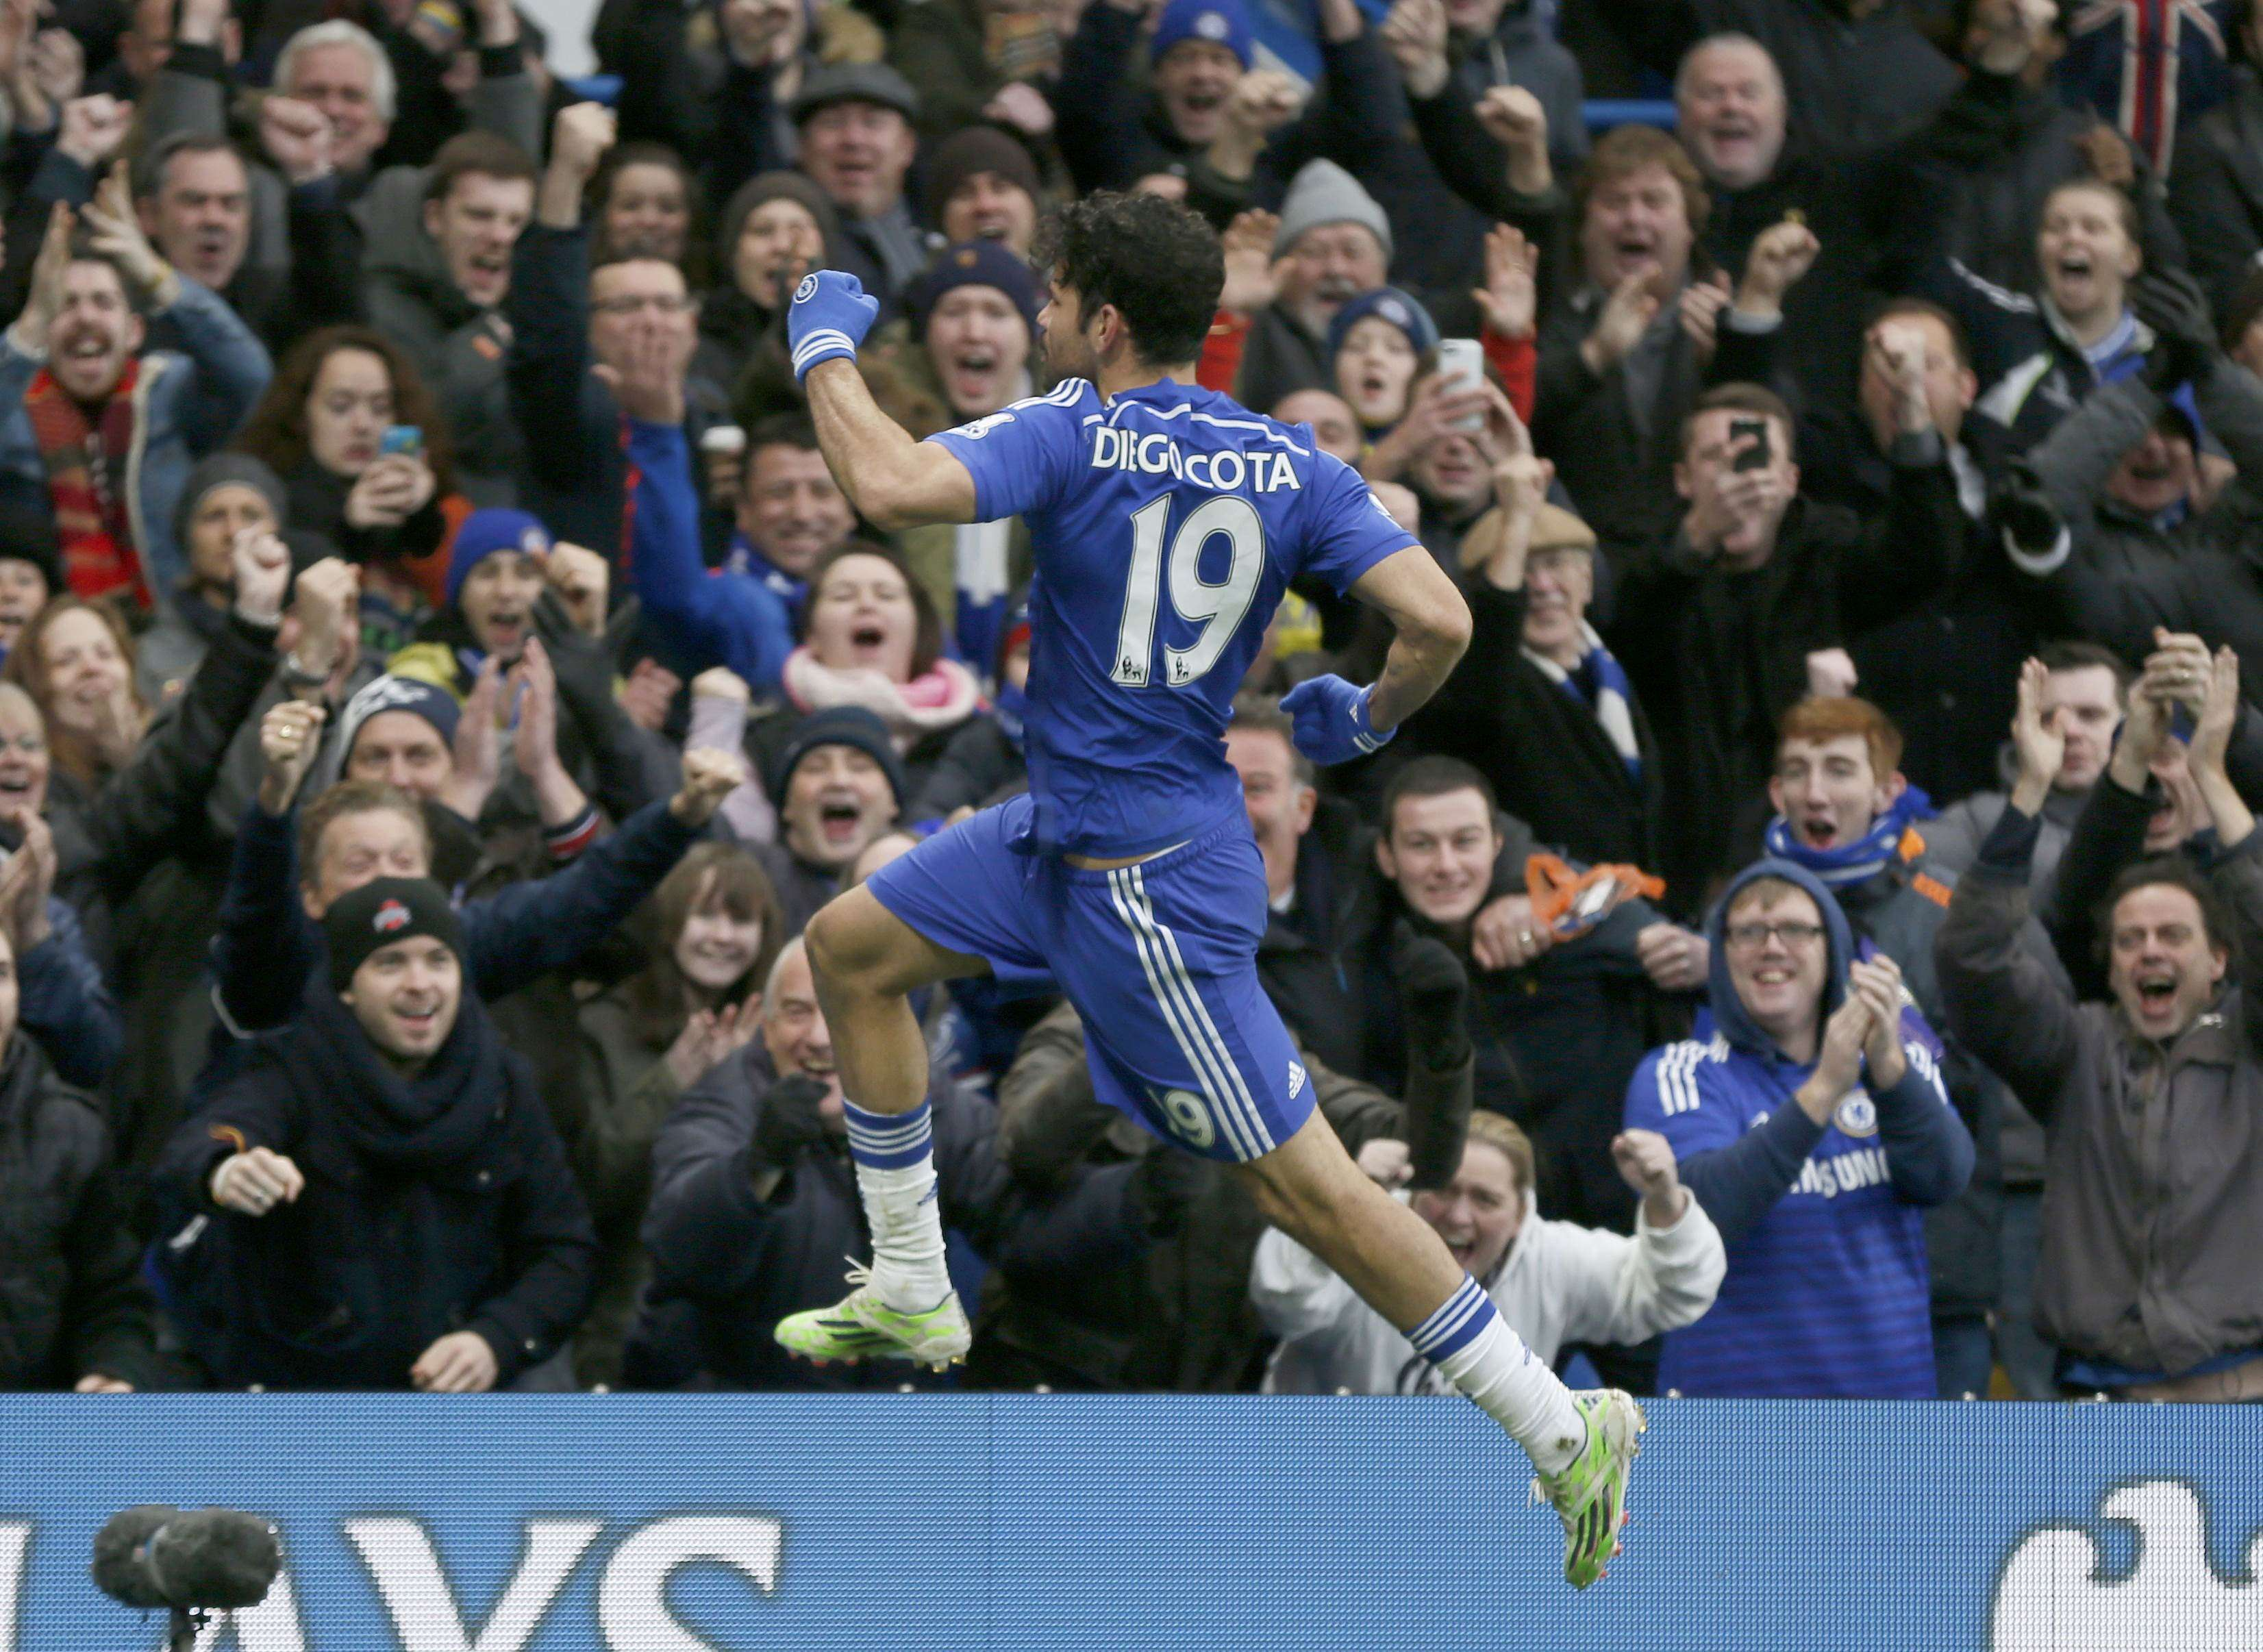 Chelsea's Diego Costa celebrates after scoring a goal against West Ham United during their English Premier League soccer match at Stamford Bridge in London, December 26, 2014. REUTERS/Stefan Wermuth (BRITAIN - Tags: SOCCER SPORT) FOR EDITORIAL USE ONLY. NOT FOR SALE FOR MARKETING OR ADVERTISING CAMPAIGNS. EDITORIAL USE ONLY. NO USE WITH UNAUTHORIZED AUDIO, VIDEO, DATA, FIXTURE LISTS, CLUB/LEAGUE LOGOS OR 'LIVE' SERVICES. ONLINE IN-MATCH USE LIMITED TO 45 IMAGES, NO VIDEO EMULATION. NO USE IN BETTING, GAMES OR SINGLE CLUB/LEAGUE/PLAYER PUBLICATIONS. Foto: STEFAN WERMUTH/REUTERS